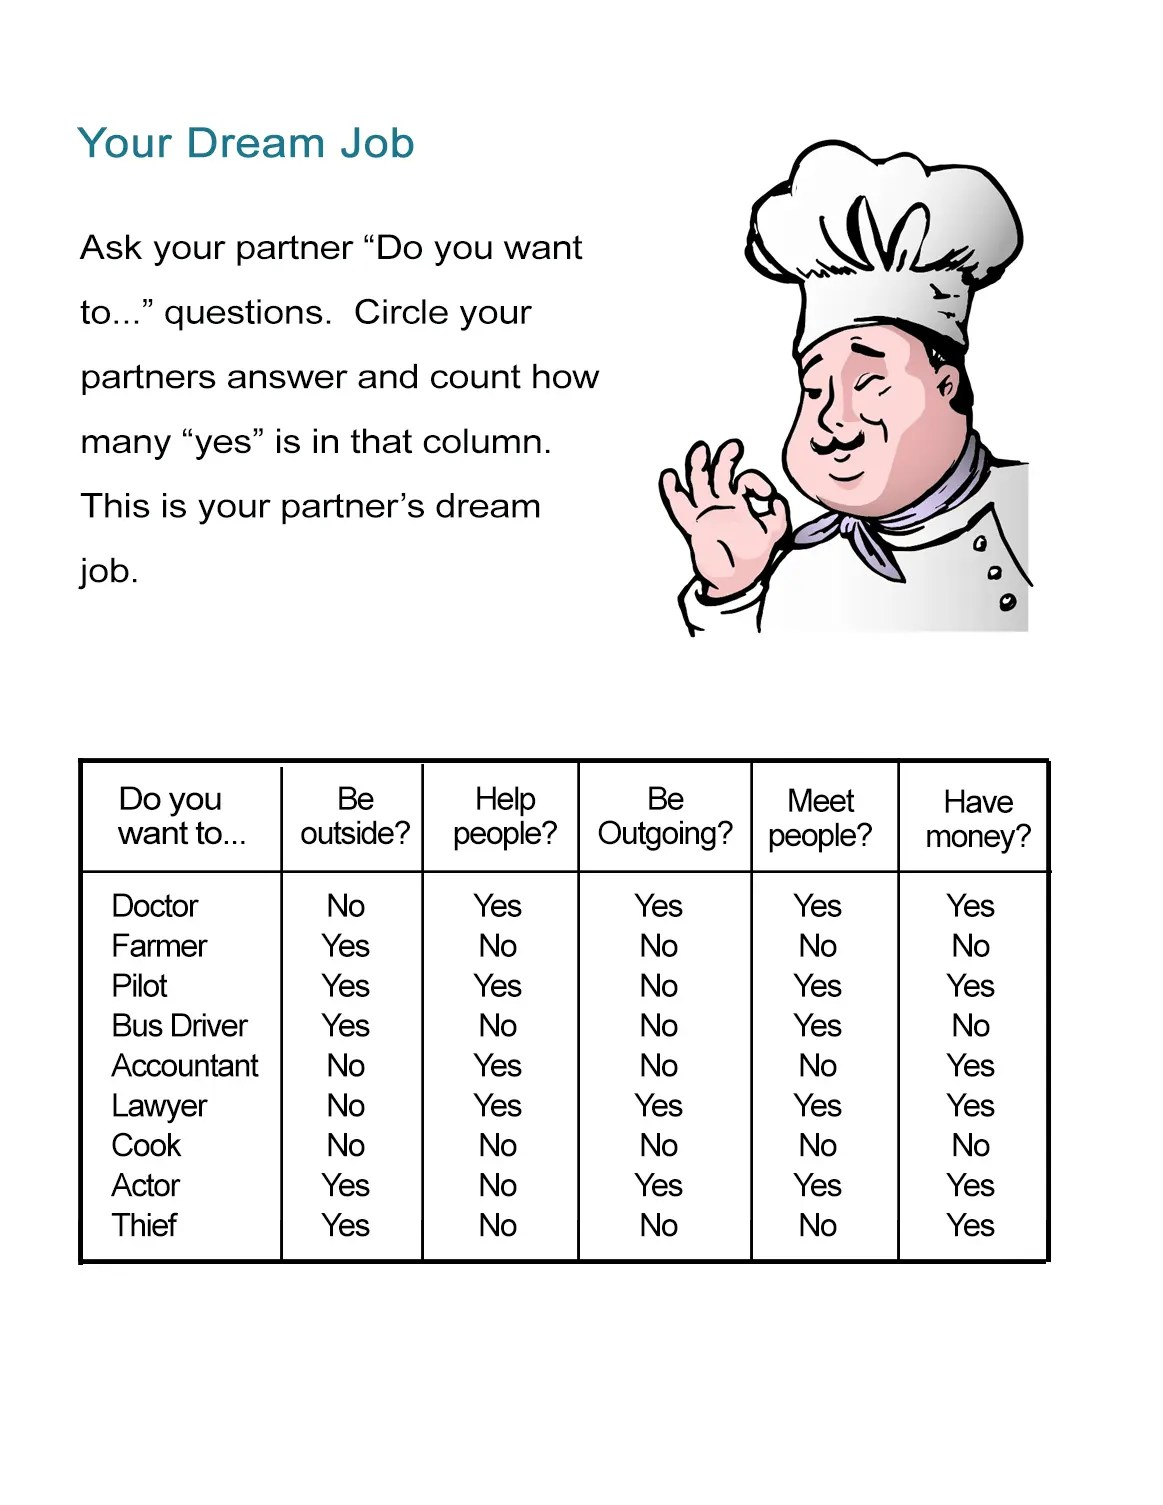 Your Dream Job Worksheet What Do You Want To Be When You